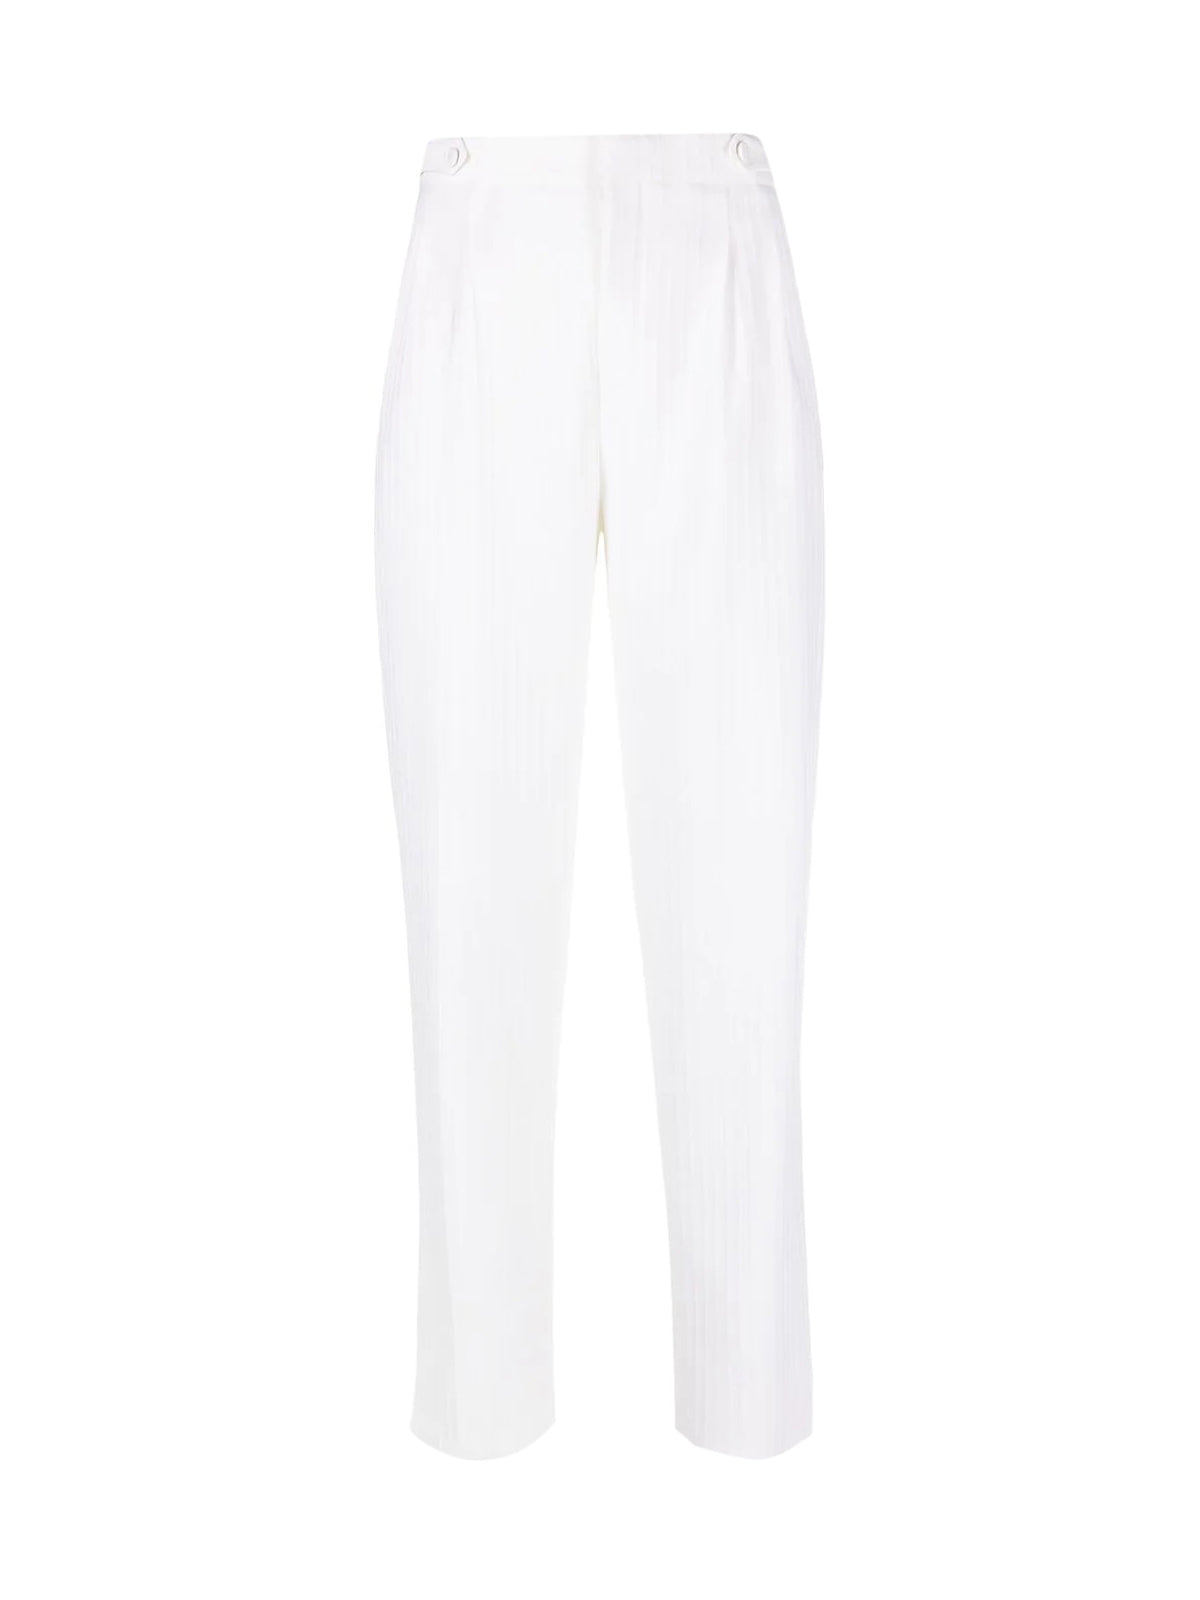 fine-ribbed virgin wool trousers